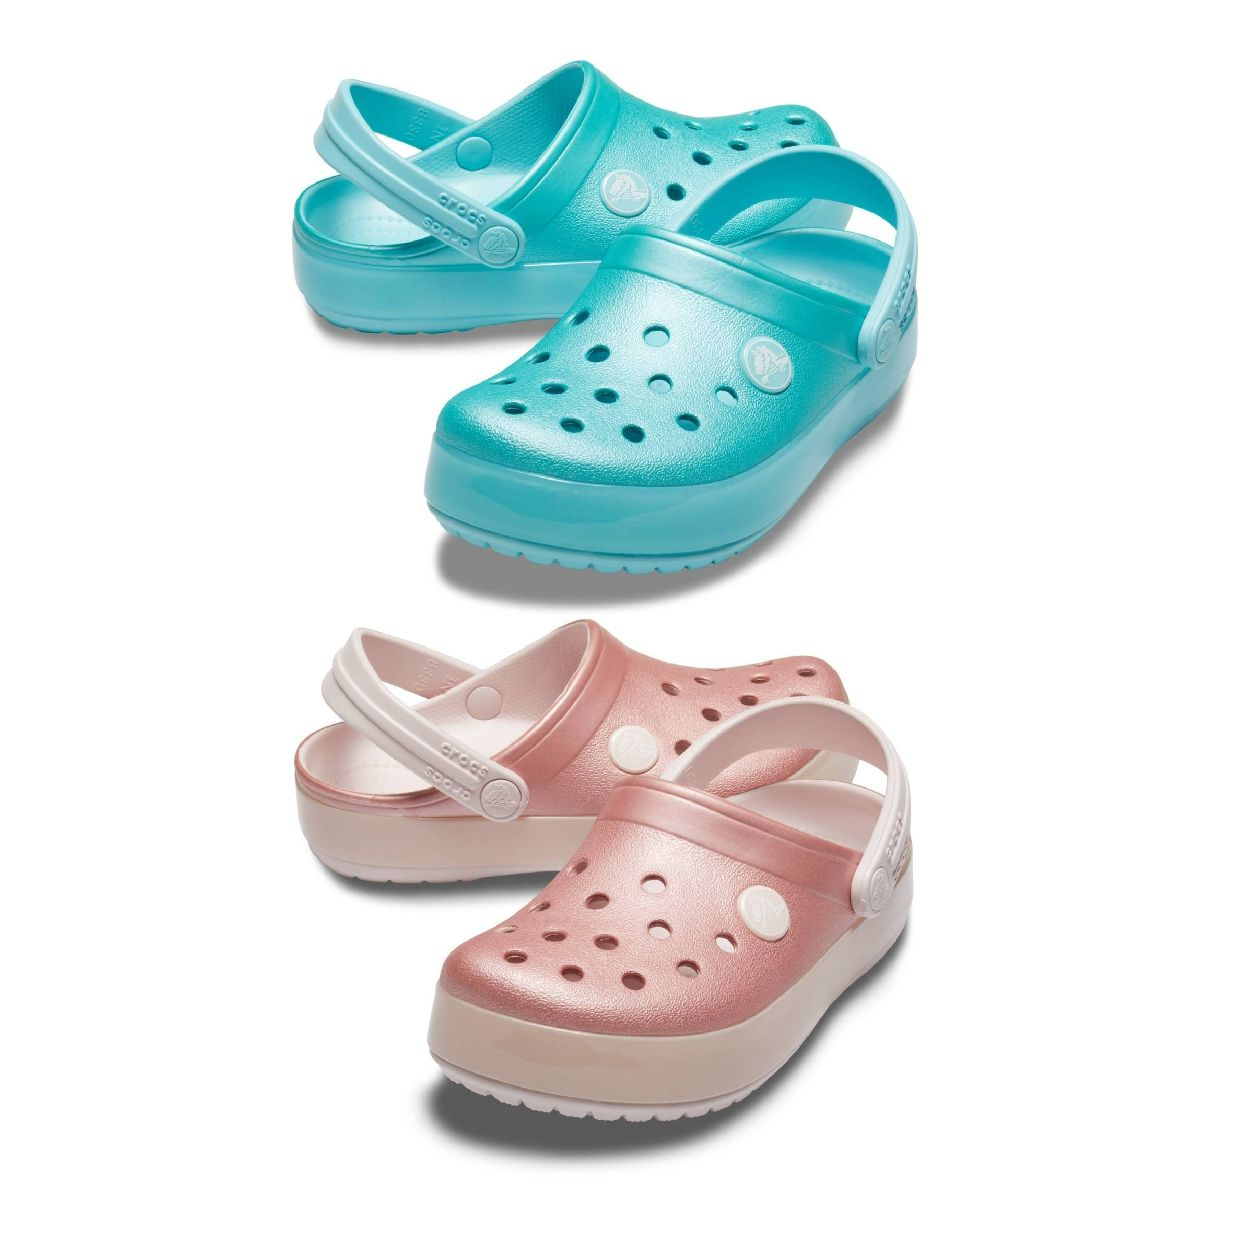 Crocs Crocband Ice Pop Clog Kids Clogs Hausschuhe Synthetik Kinder Schuhe FS19